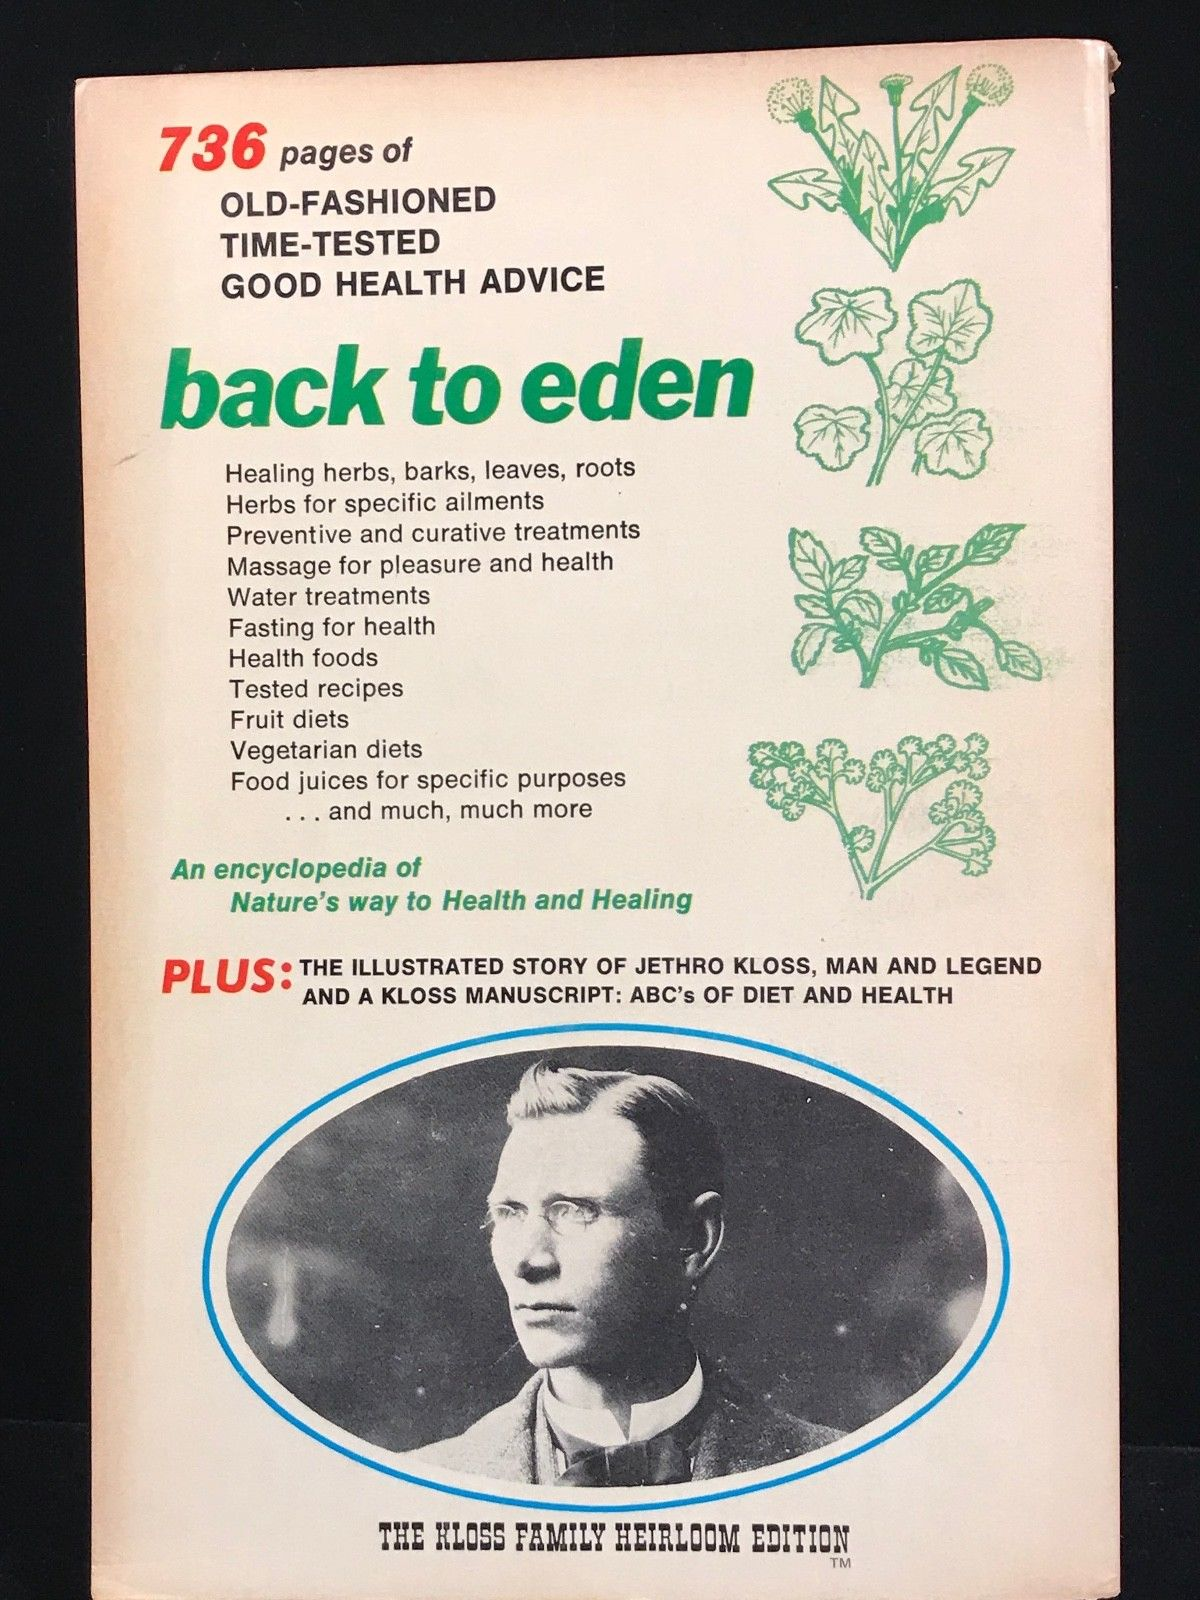 BACK TO EDEN by JETHRO KLOSS - 1973, 4th Ed - HERBAL